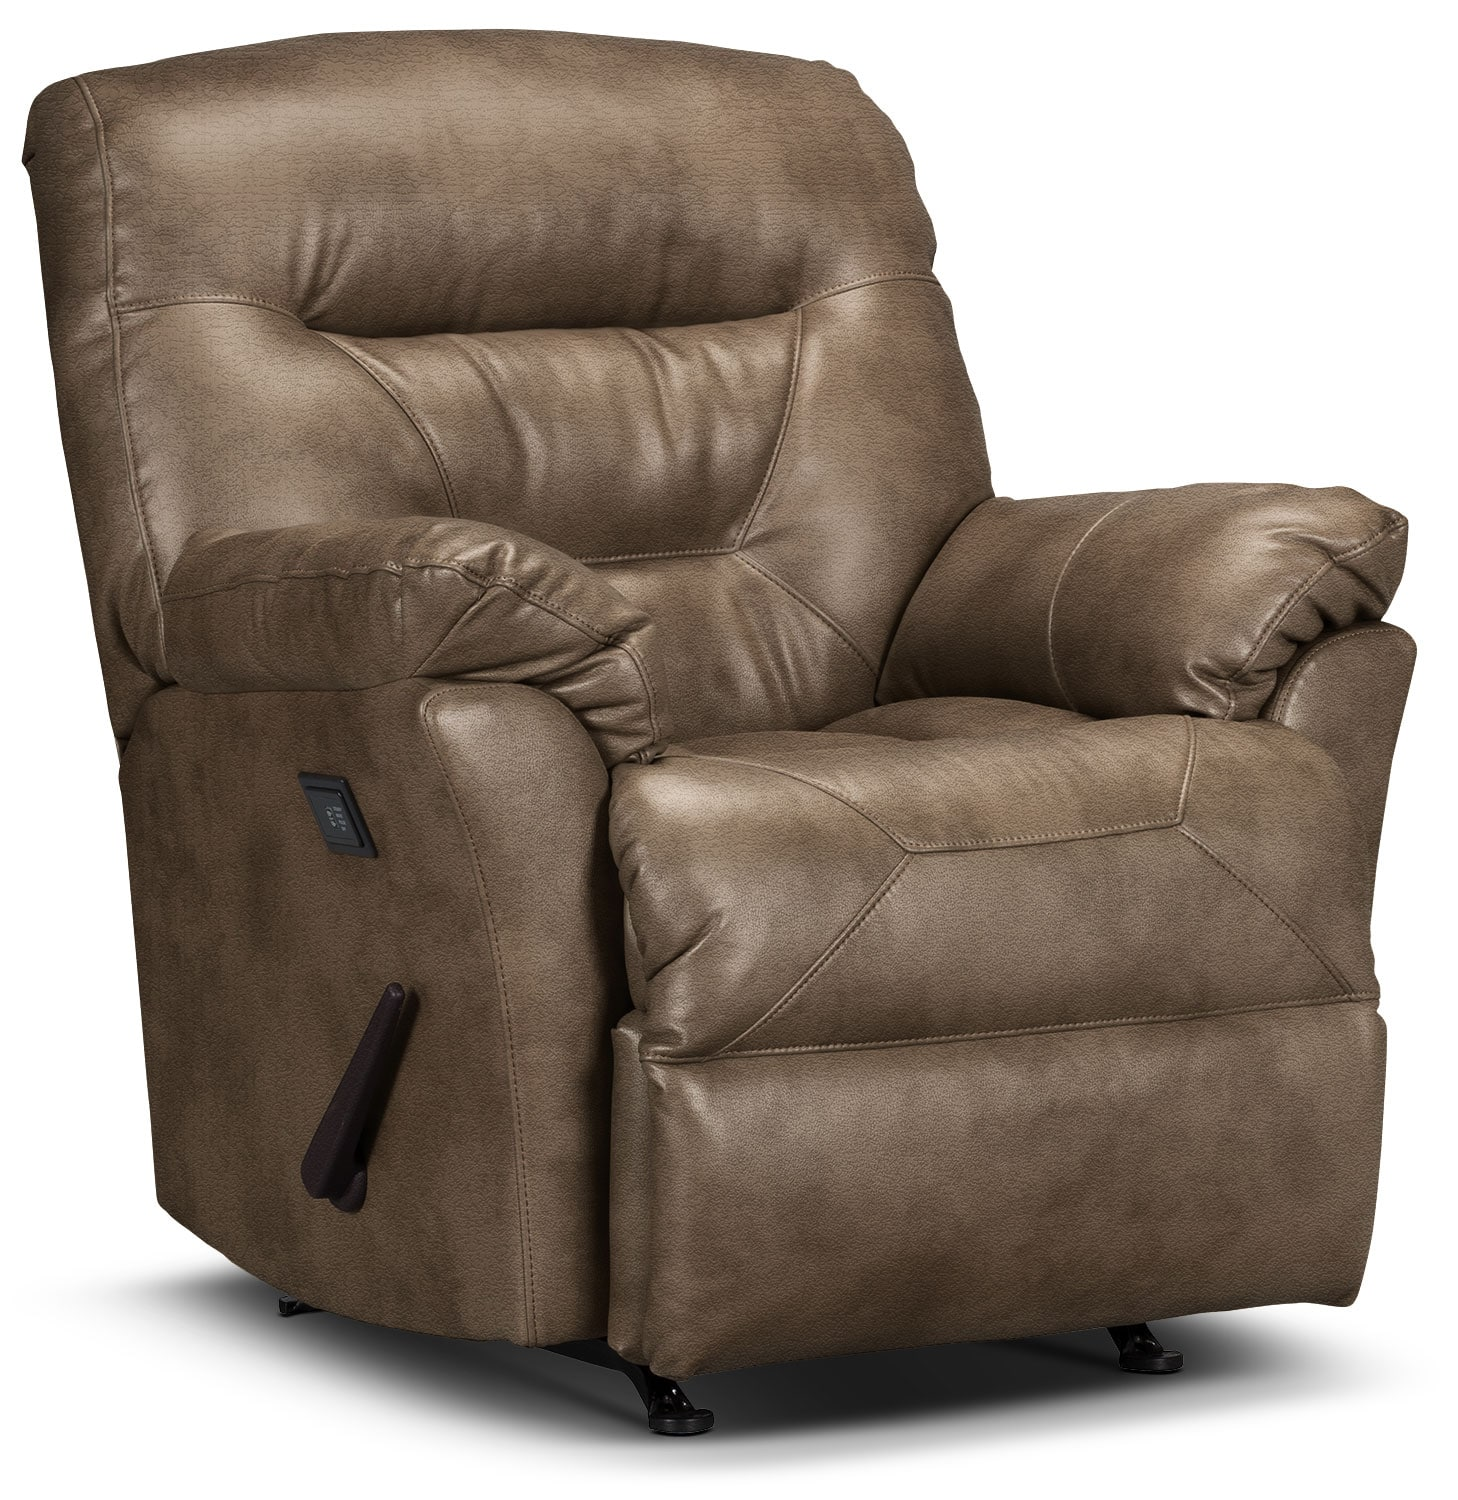 Designed2B Recliner 4579 Leather-Look Fabric Massage Recliner - Tobacco